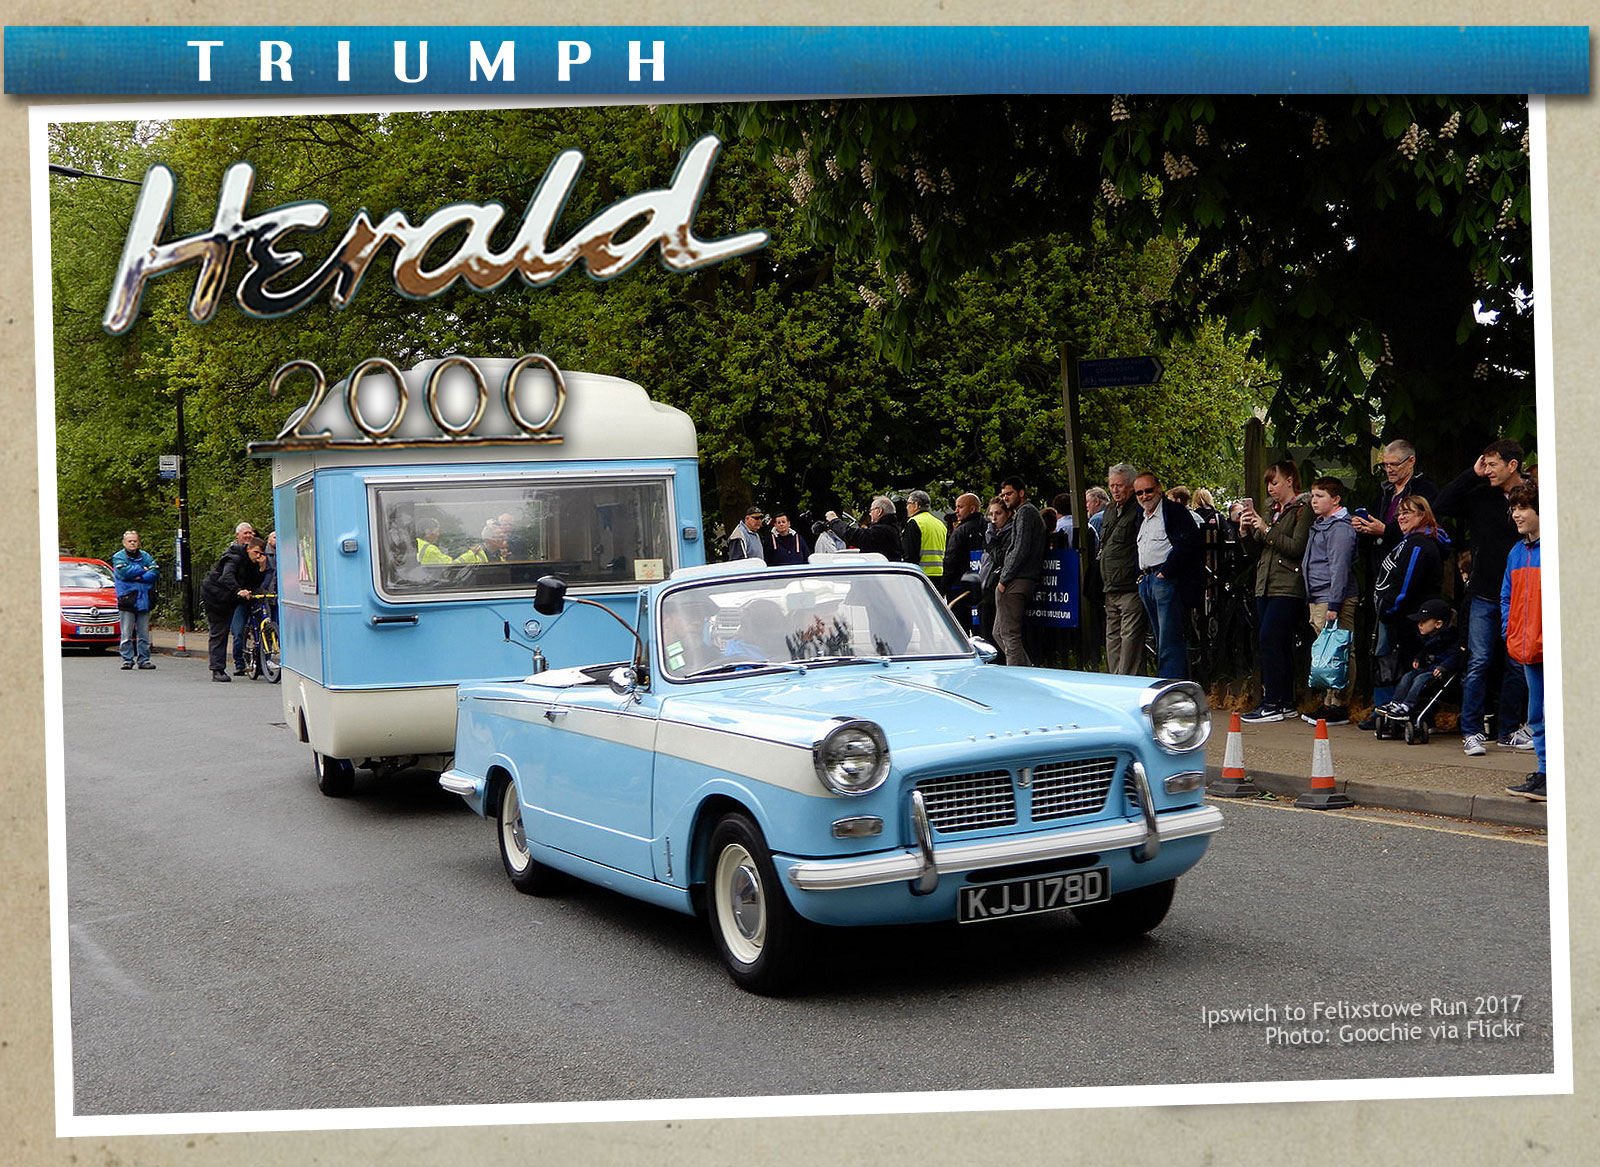 Paul's homage to his Triumph Herald 2000 and Viking Fibreline Caravan